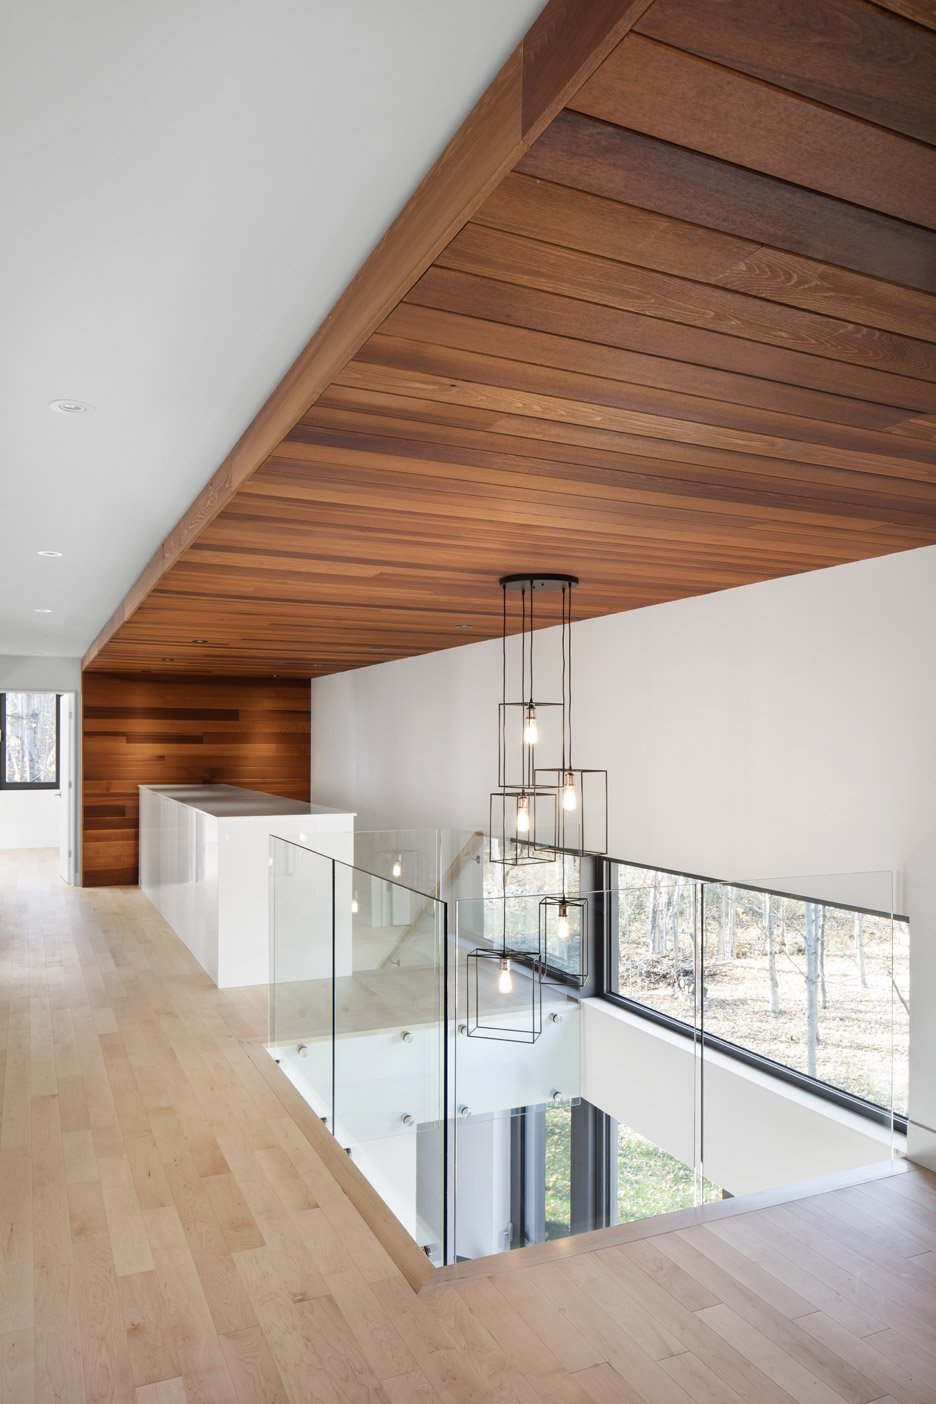 KL House by Bourgeois Lechasseur Architects